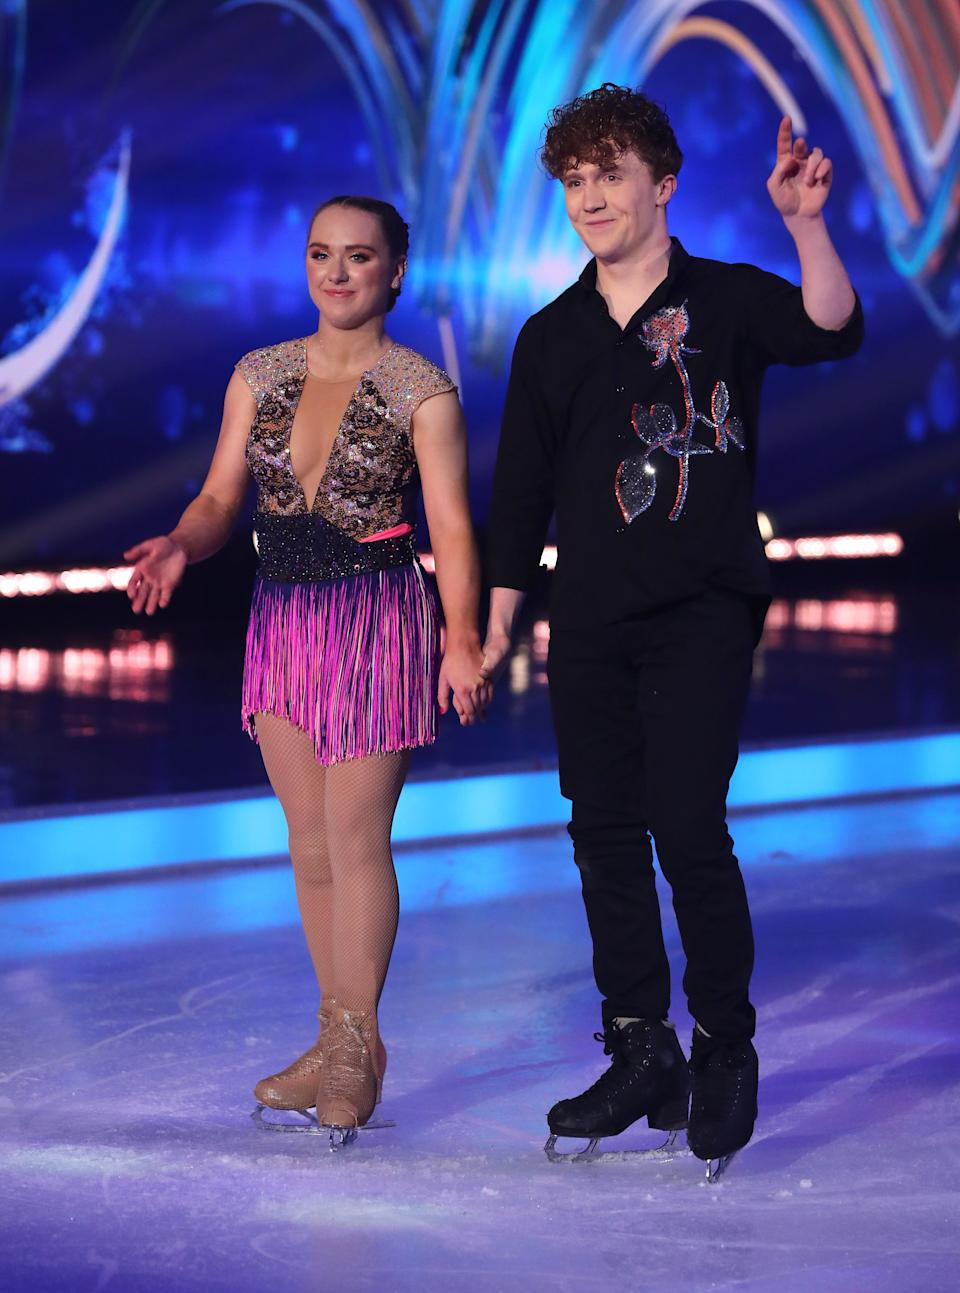 Editorial use only Mandatory Credit: Photo by Matt Frost/ITV/Shutterstock (11757931ih) Amy Tinkler and Joe Johnson 'Dancing On Ice' TV show, Series 13, Episode 5, Hertfordshire, UK - 14 Feb 2021